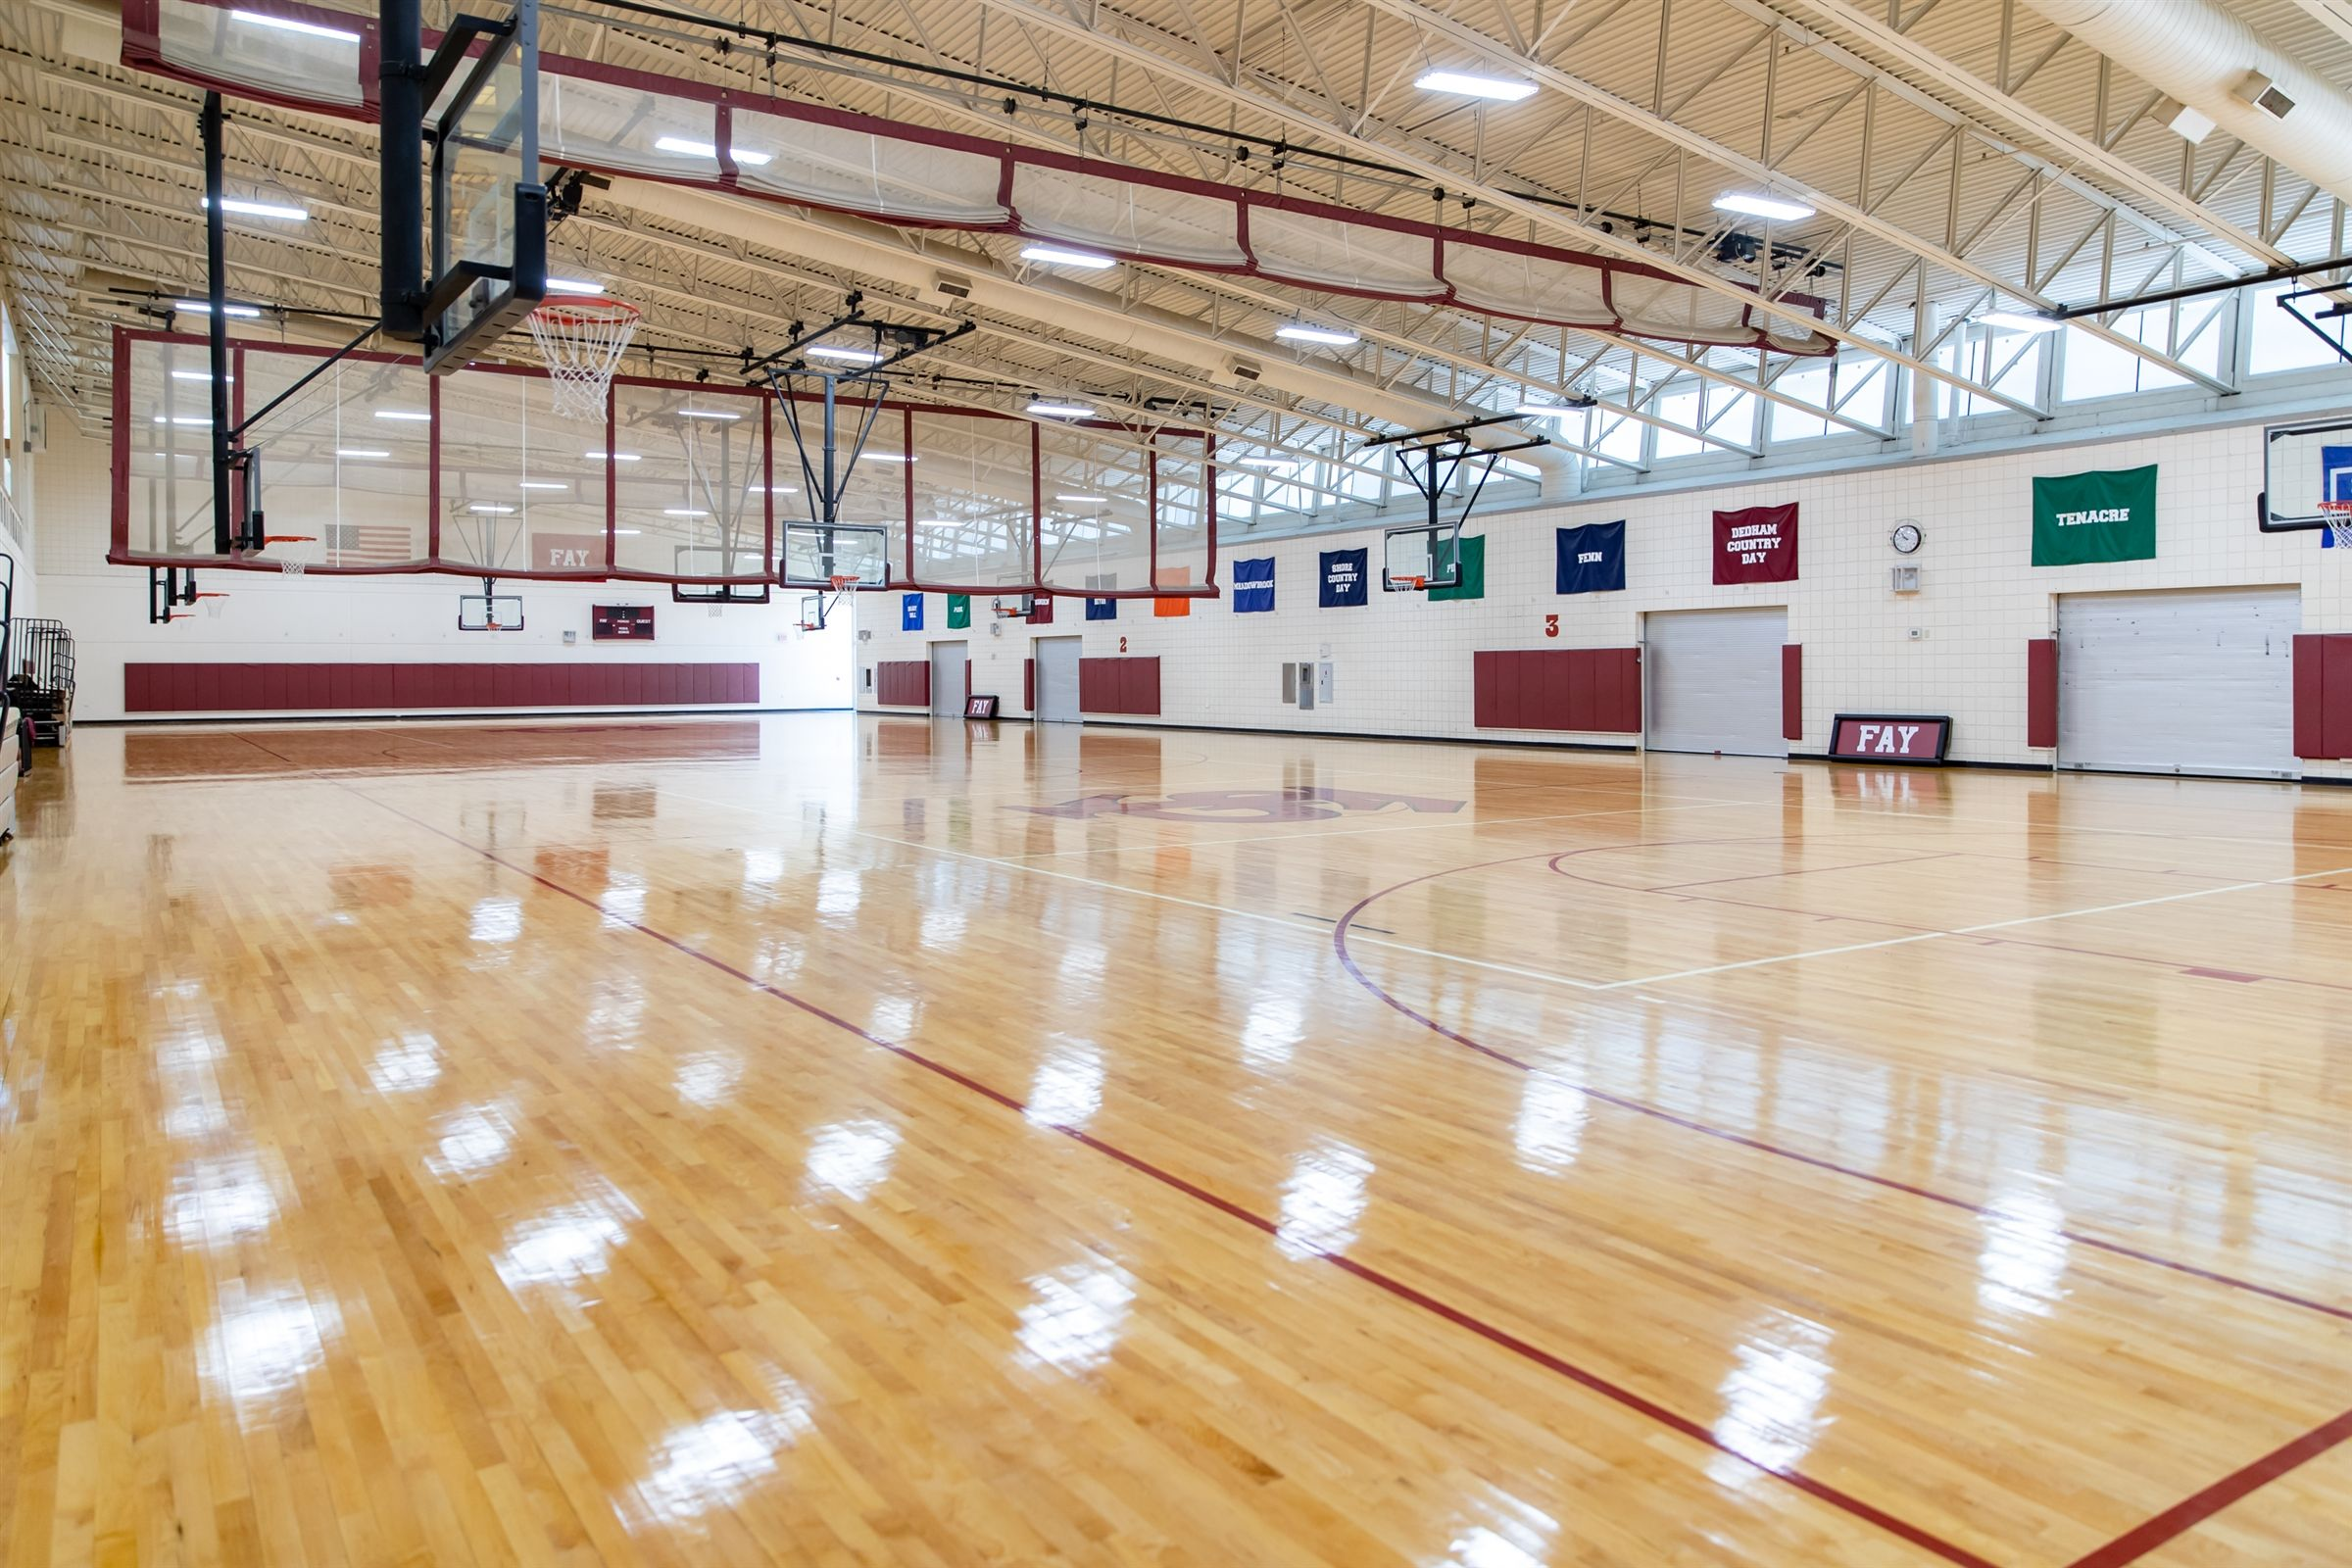 Harlow Gym is the home of our athletics program and includes two regulation-size basketball courts, rock climbing wall, wrestling room, dance studio, classroom space, and locker rooms.